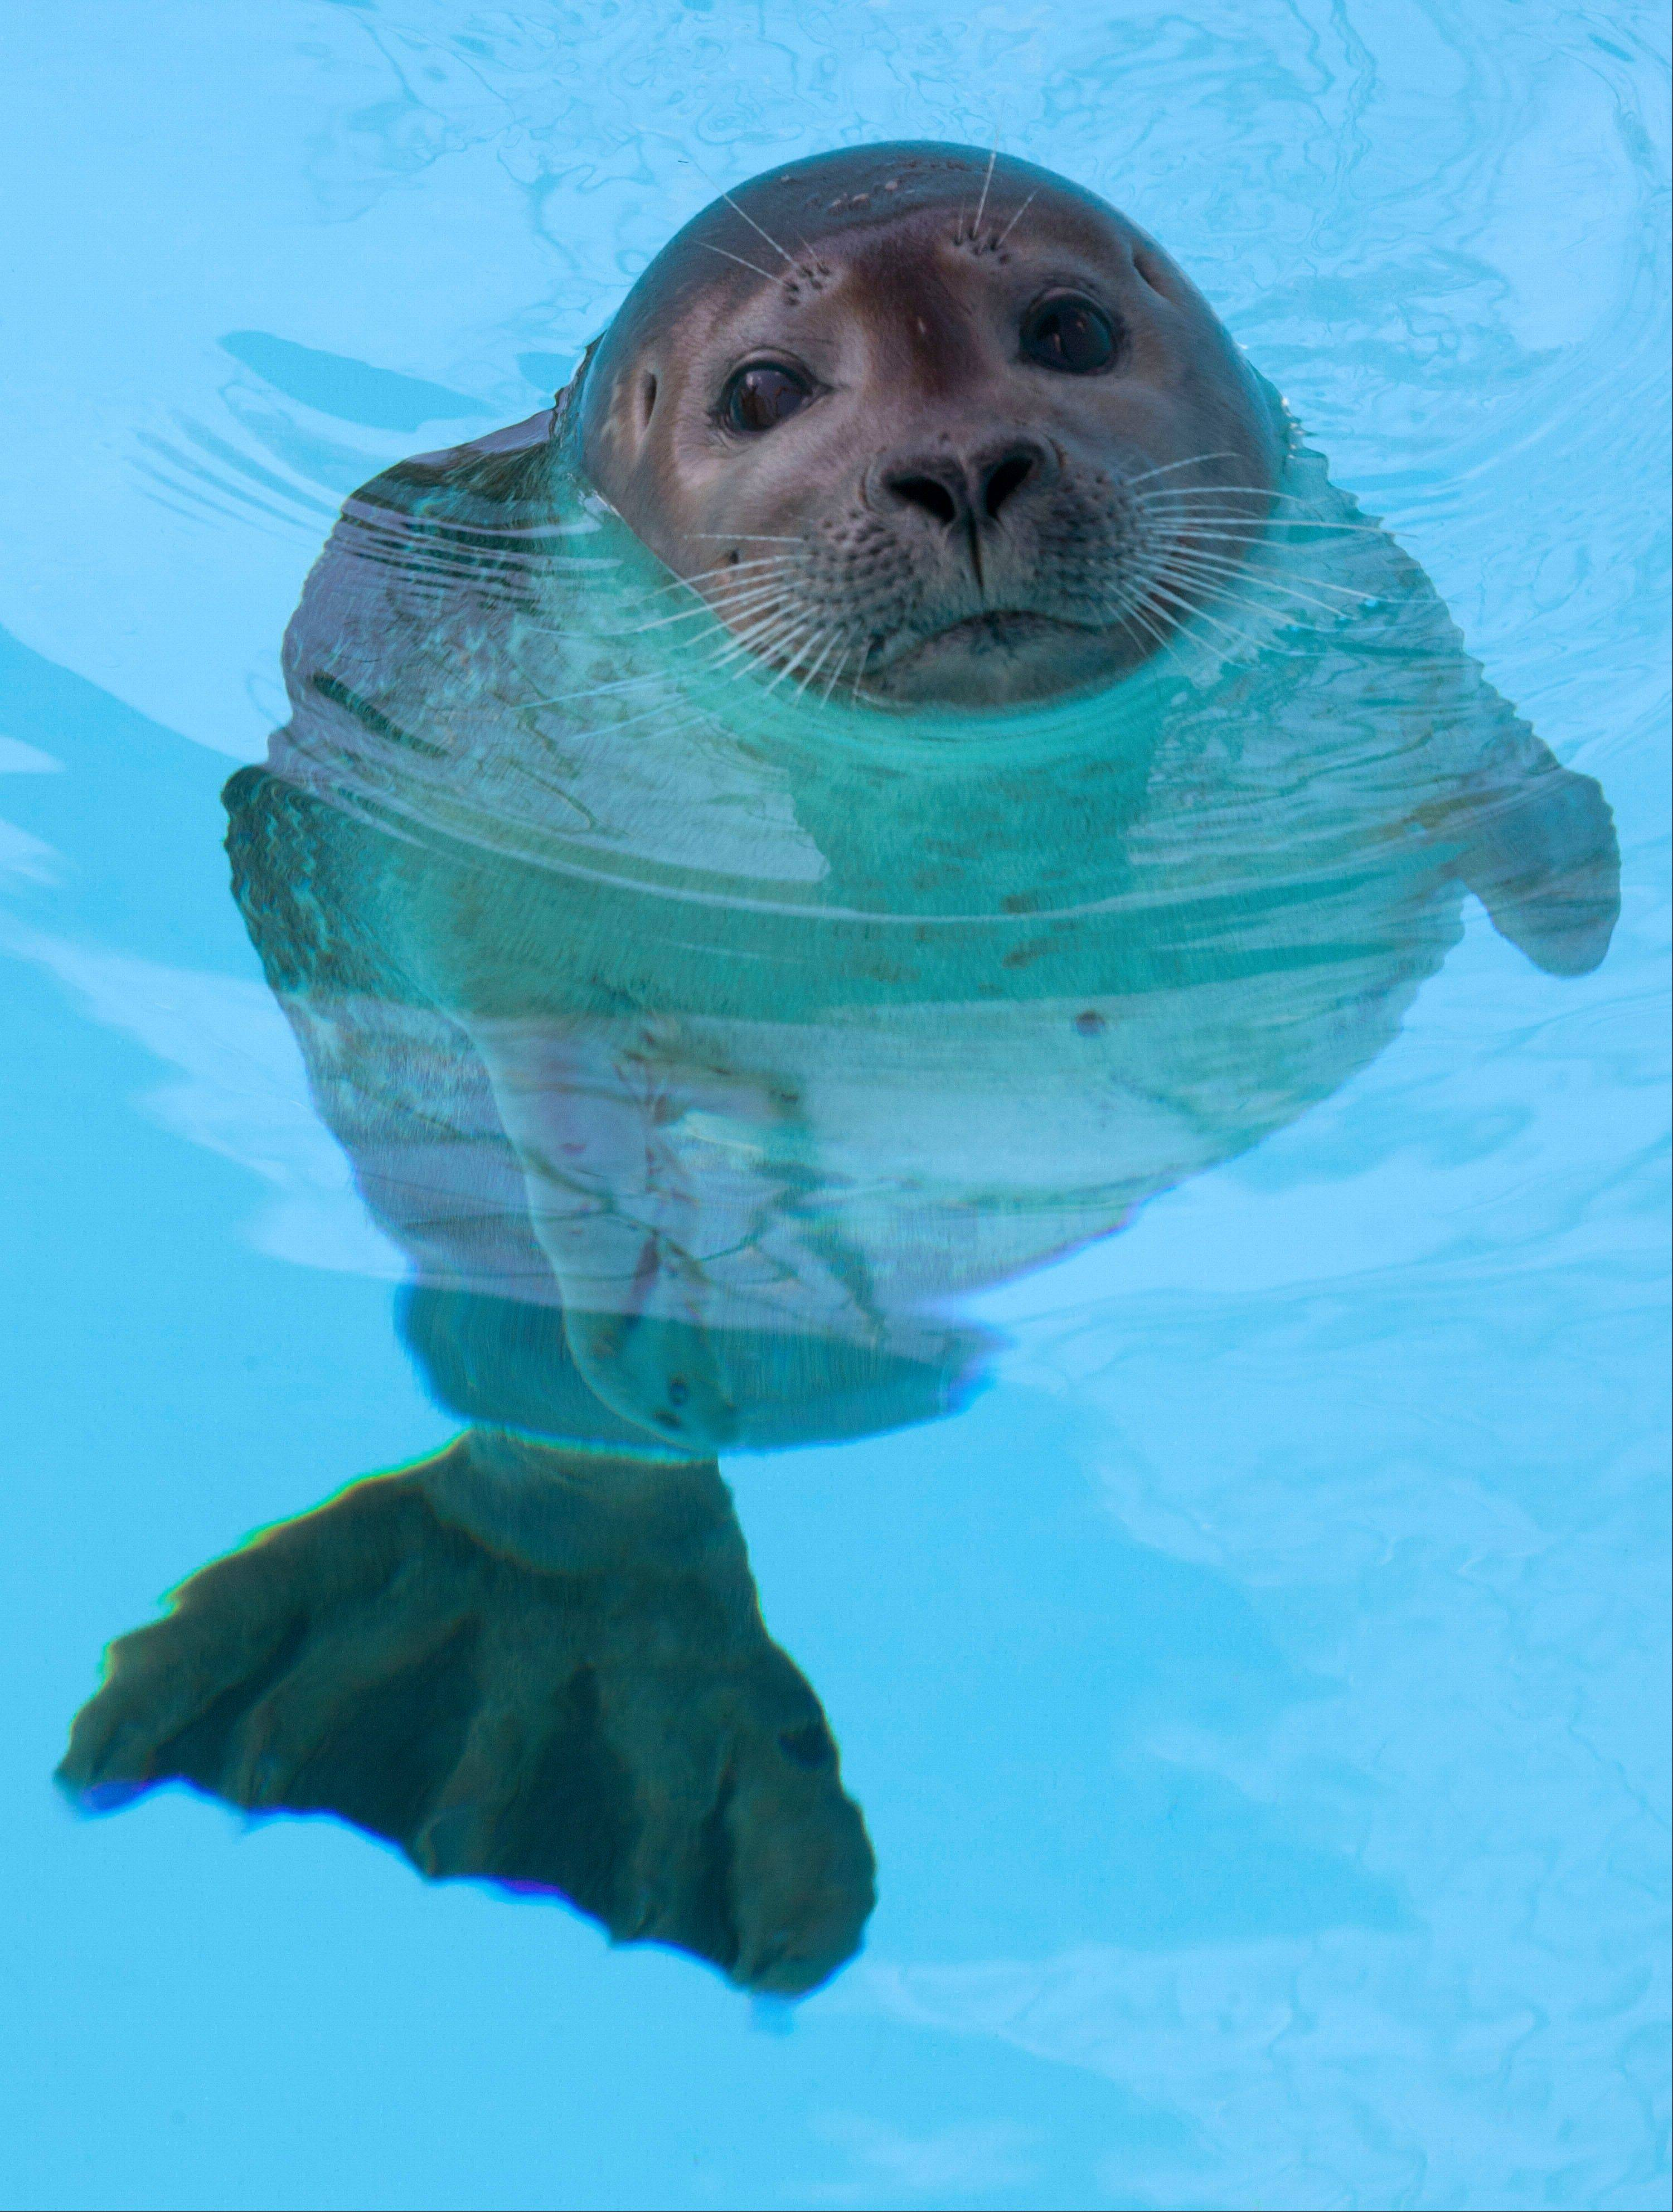 An 8-month old female harbor seal, known as Pup 49, swims Wednesday in a pool at Mystic Aquarium in Mystic, Conn.